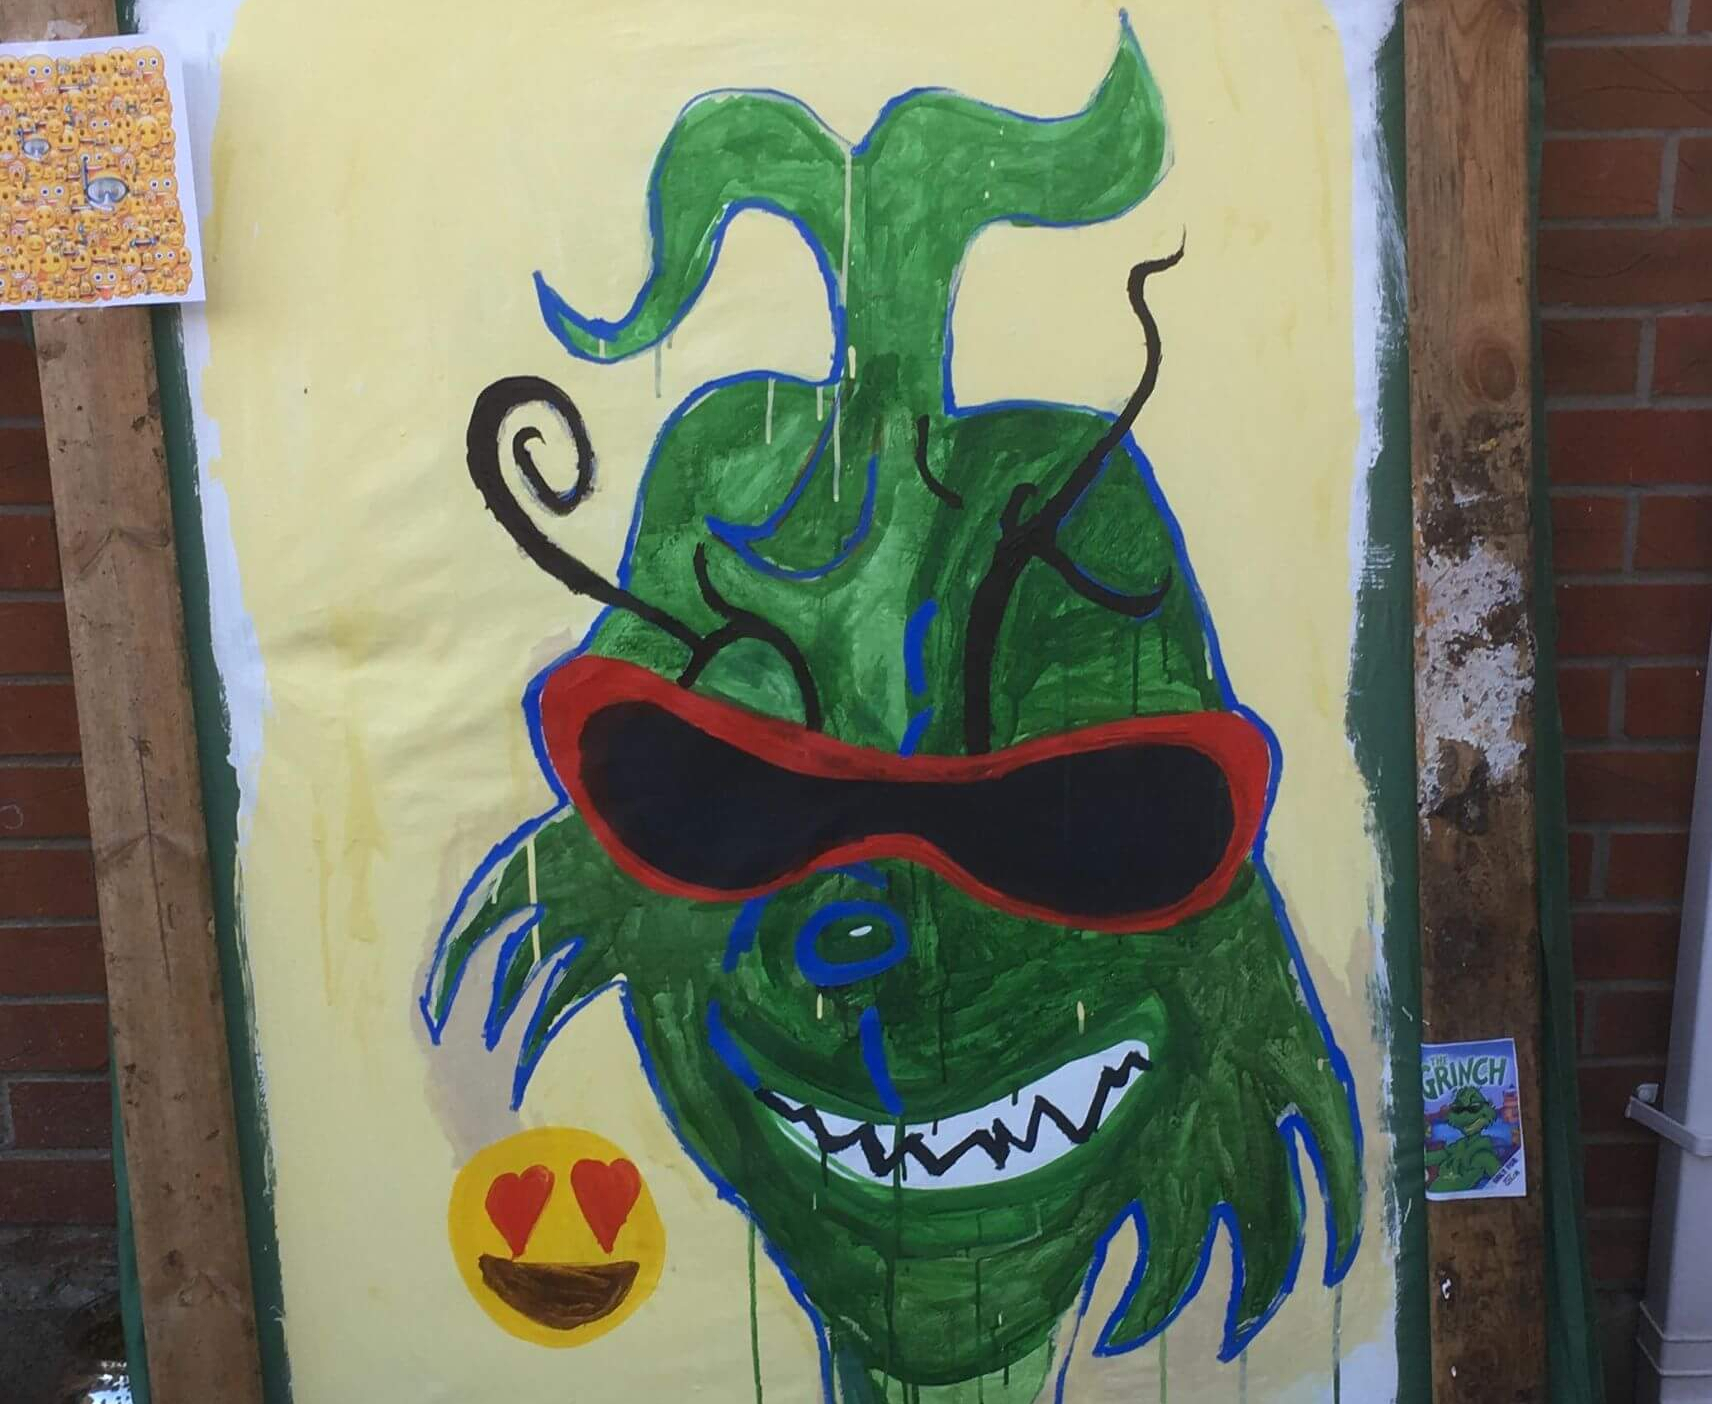 Painting of The Grinch with emoji face by Husk Bennett